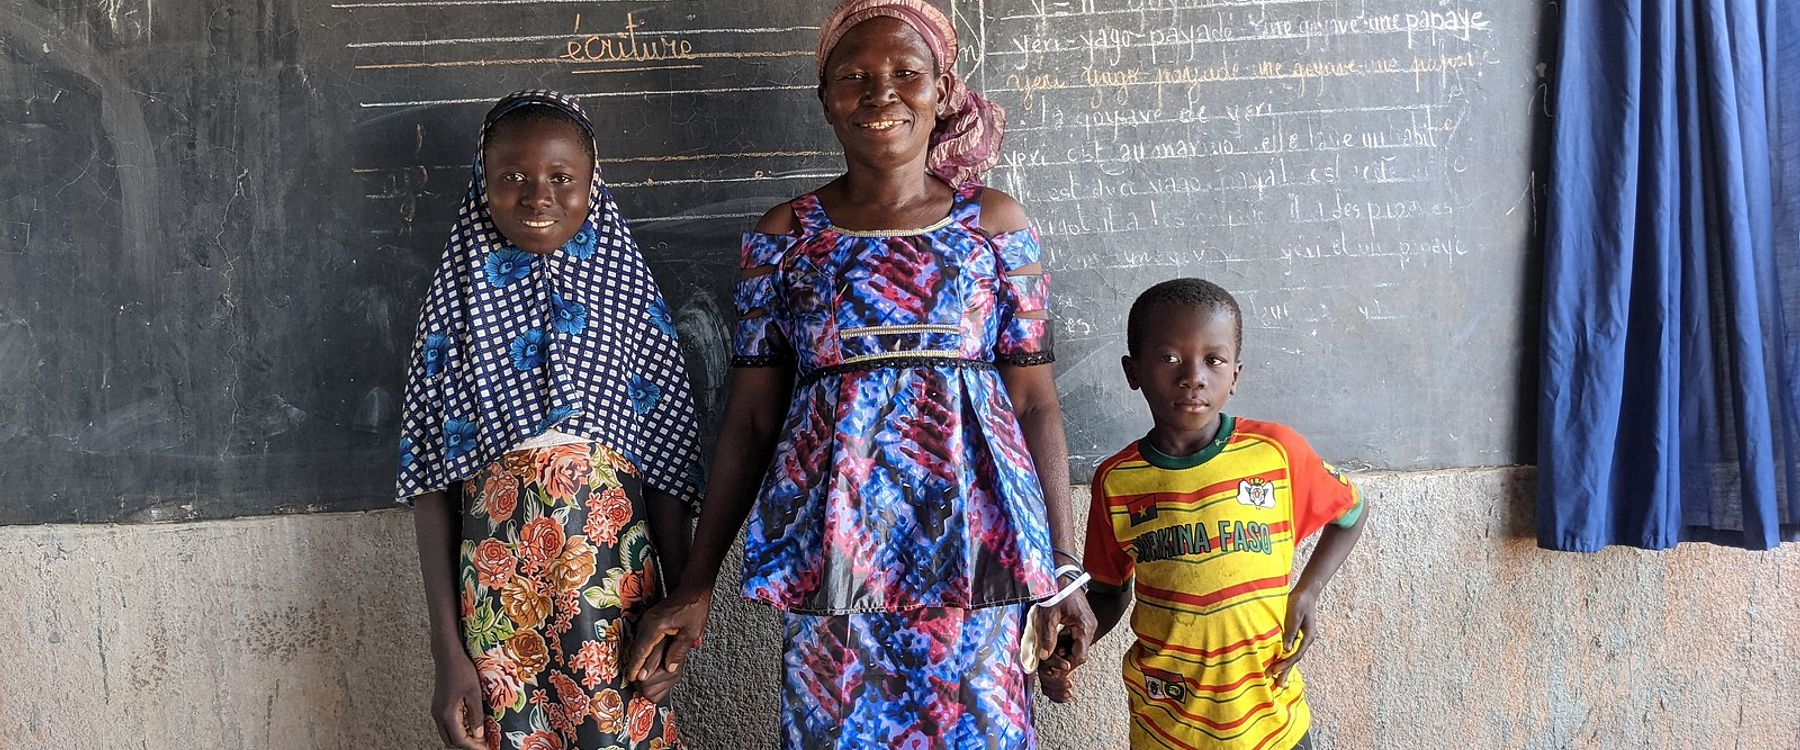 Nignan Kakoira from Sia, Burkina Faso, poses in front of classroom blackboard with her granddaughter and grandson